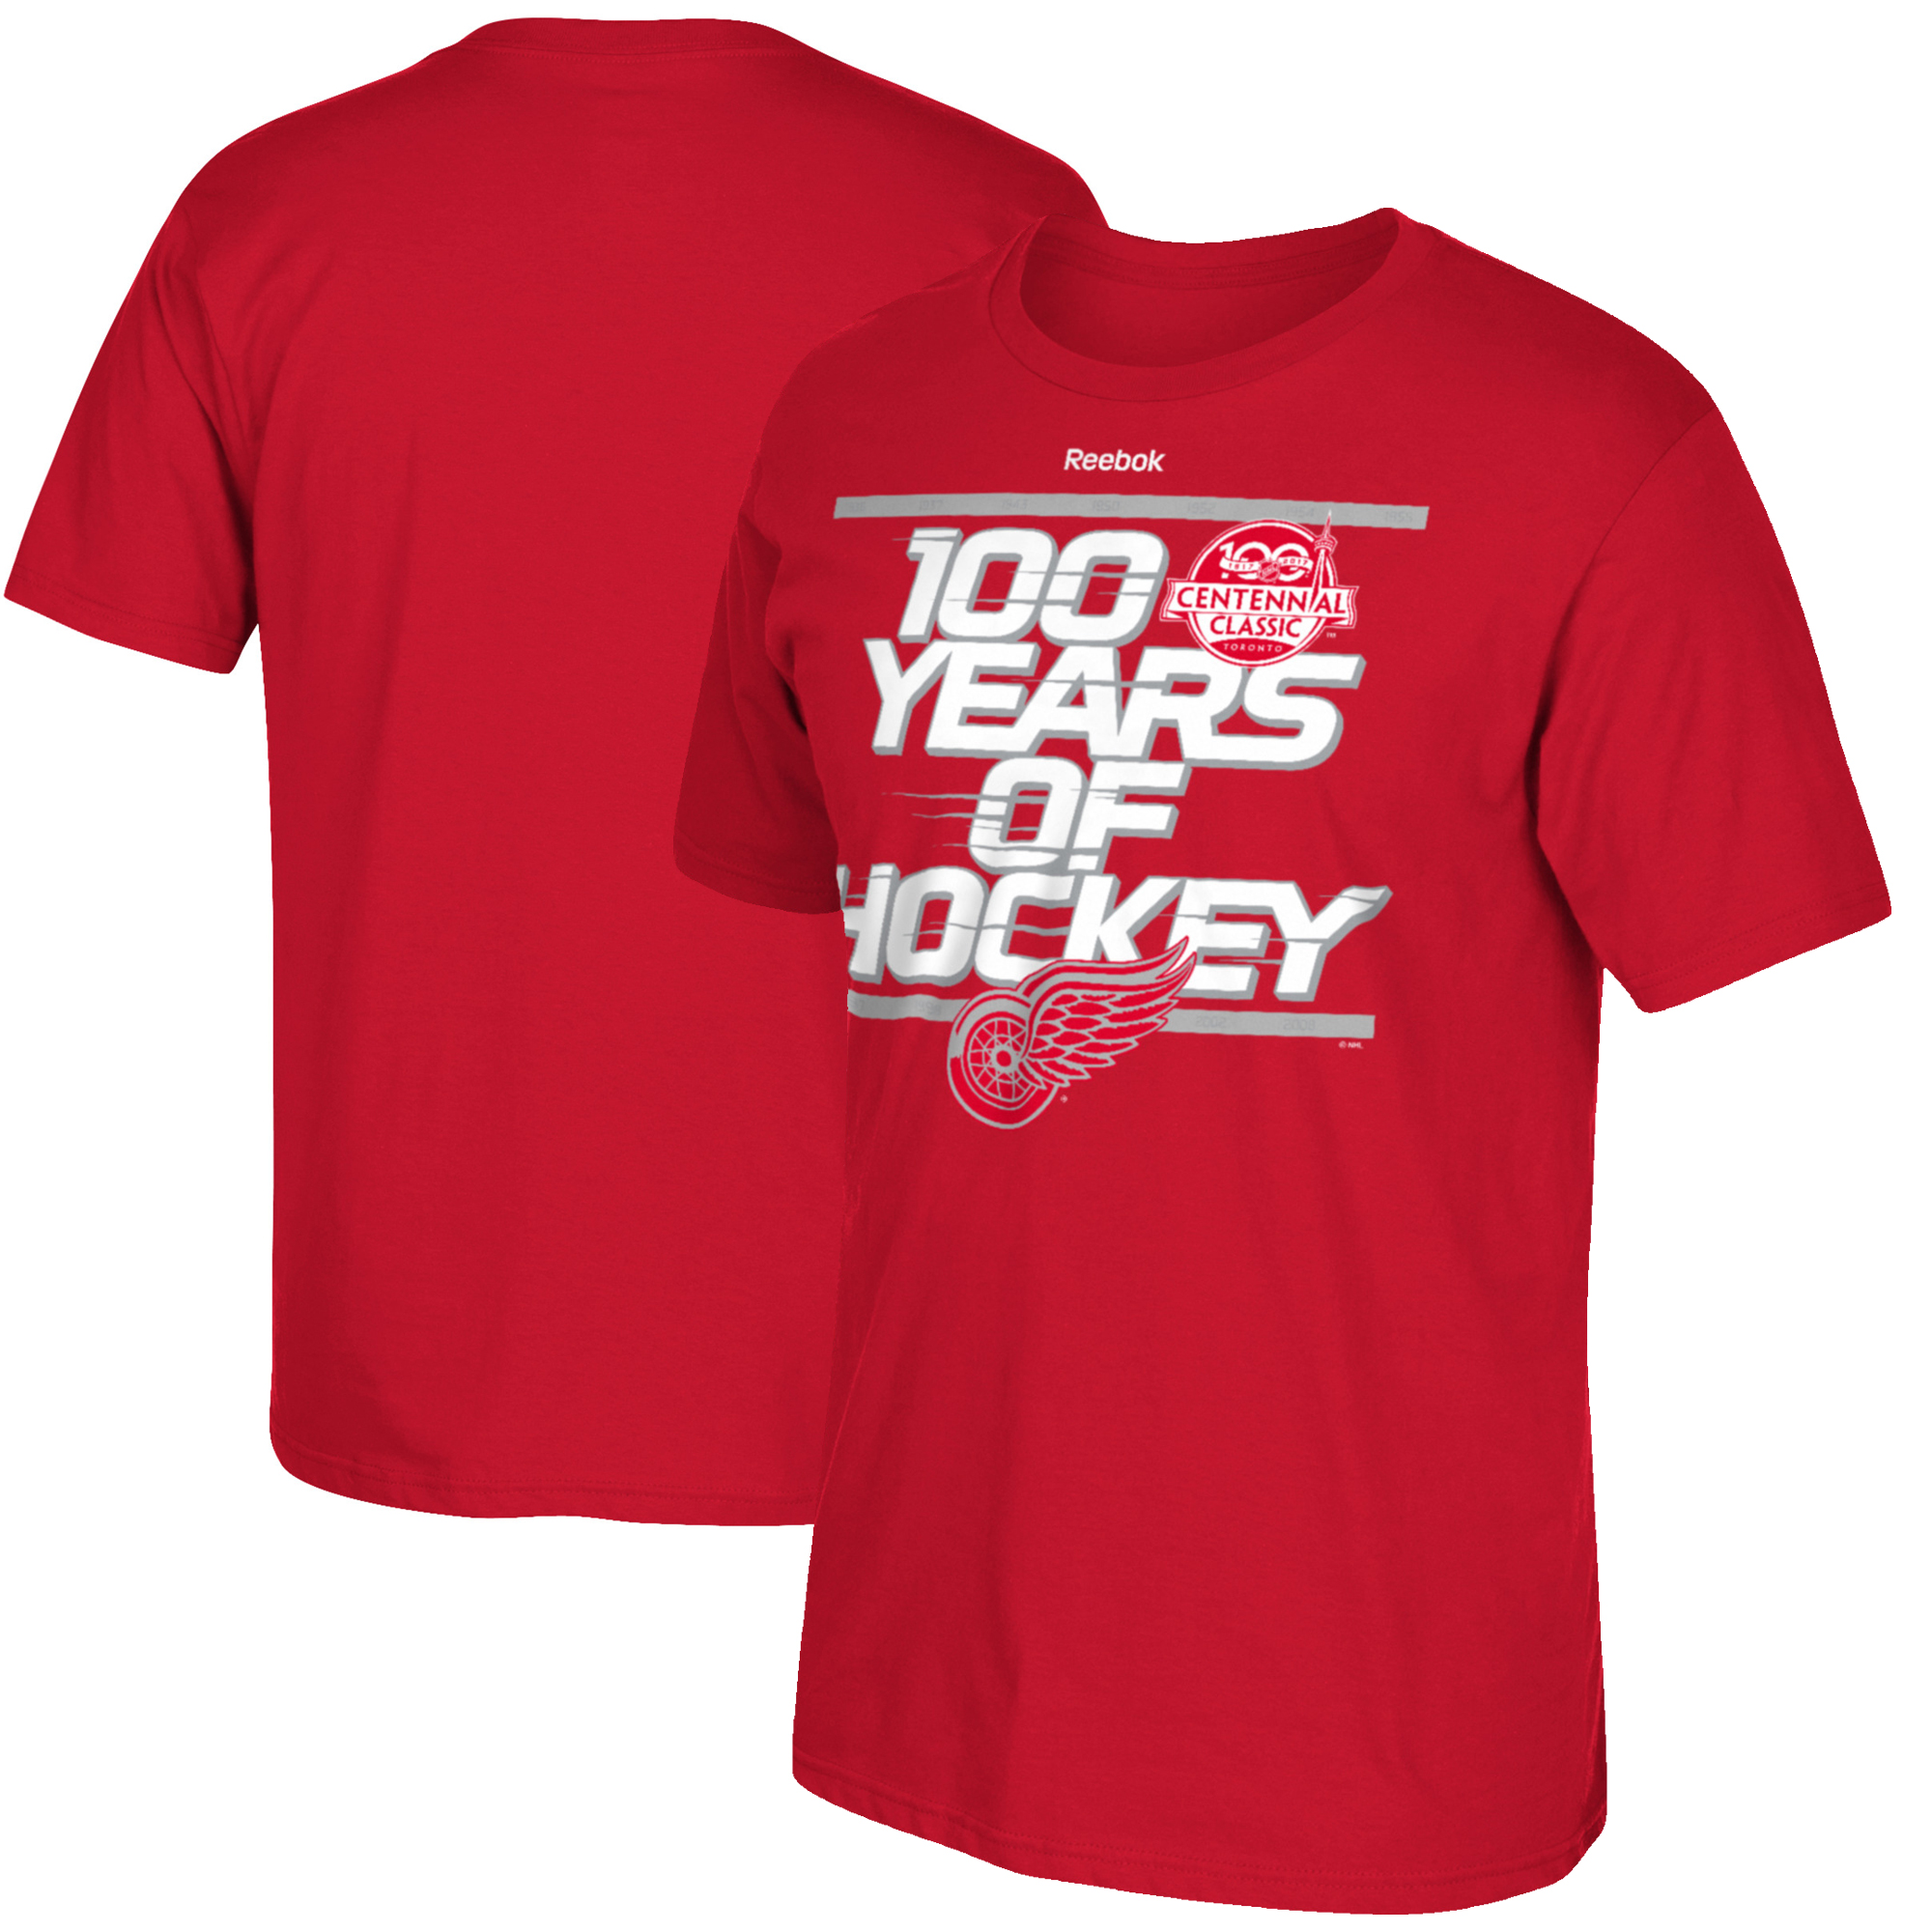 Detroit Red Wings Reebok 2017 Centennial Classic Localized T-Shirt - Red